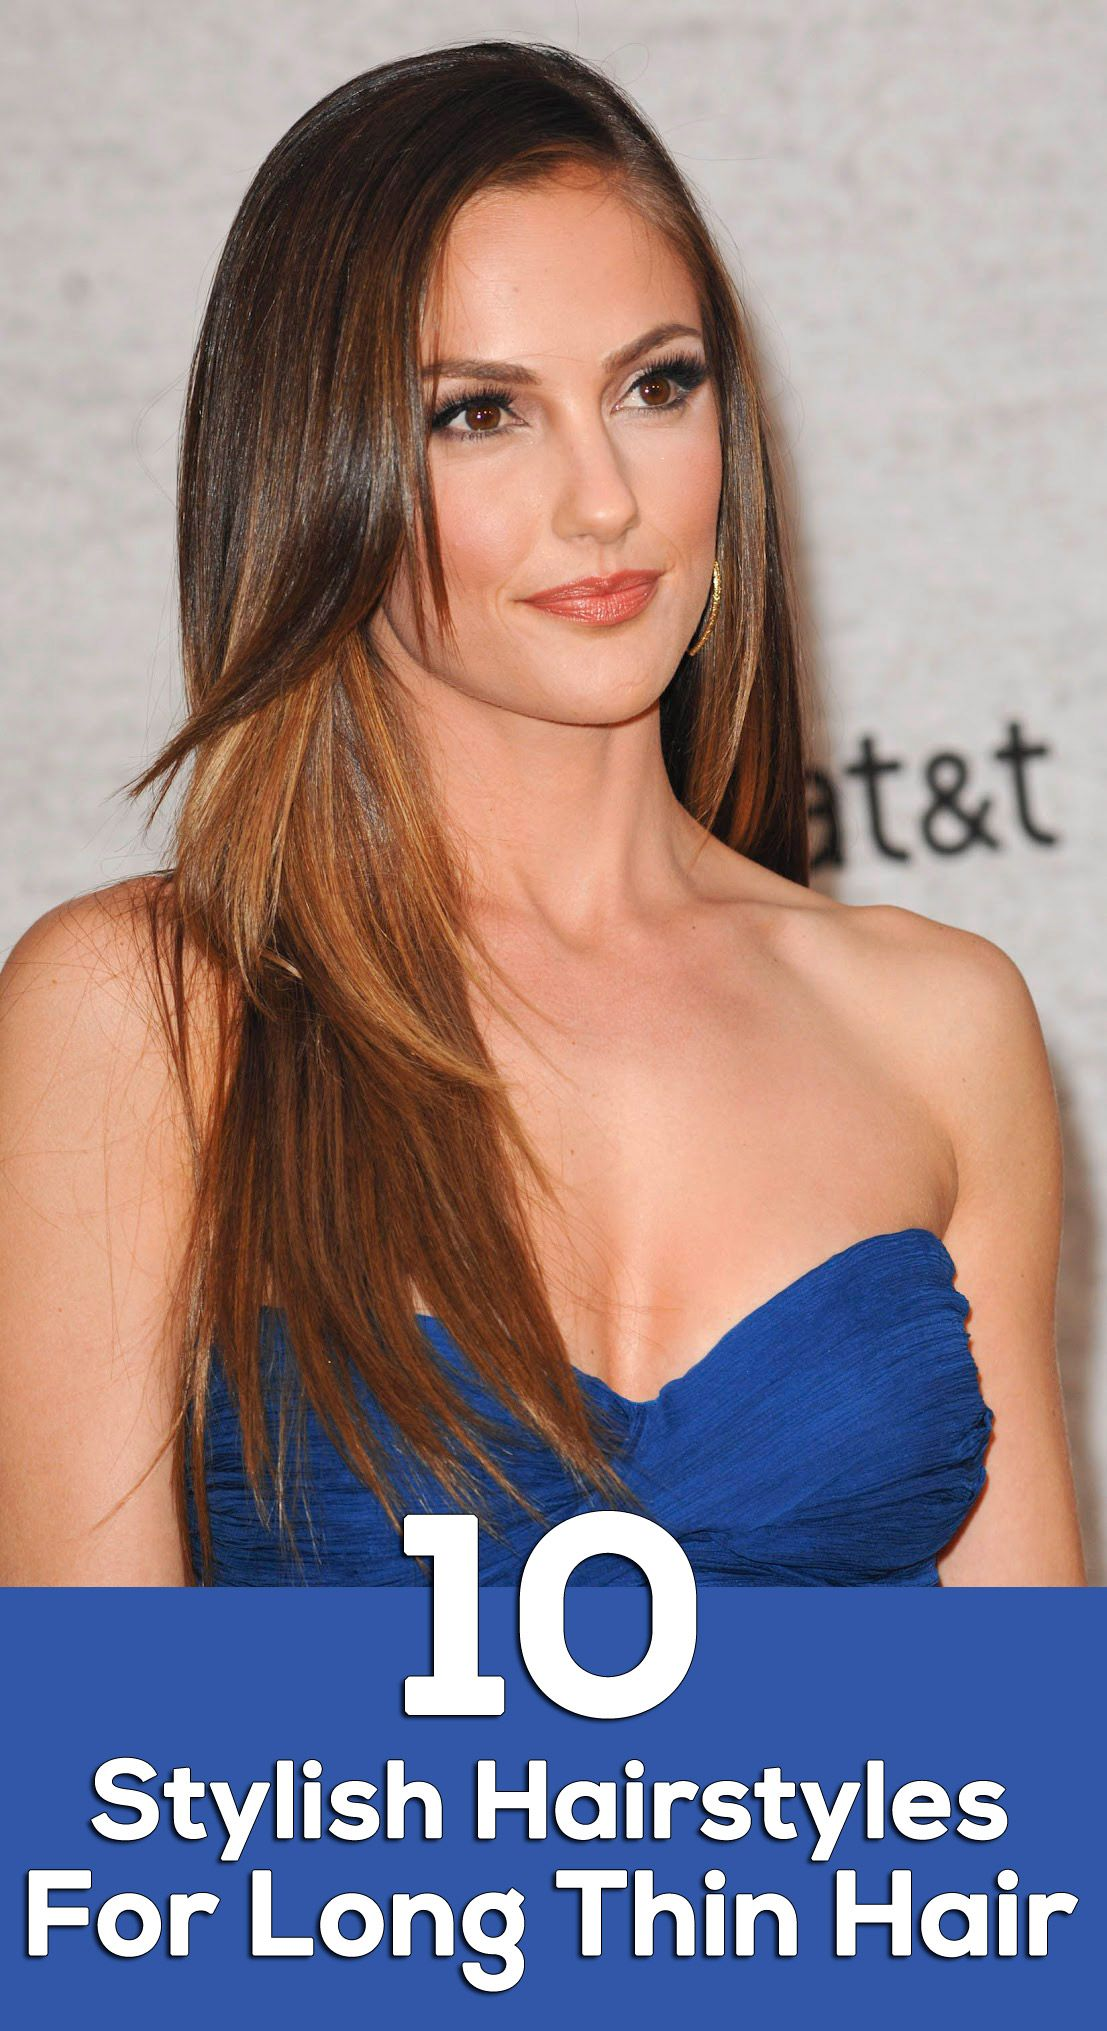 10 Stylish Hairstyles For Long Thin Hair   Hair styles ...